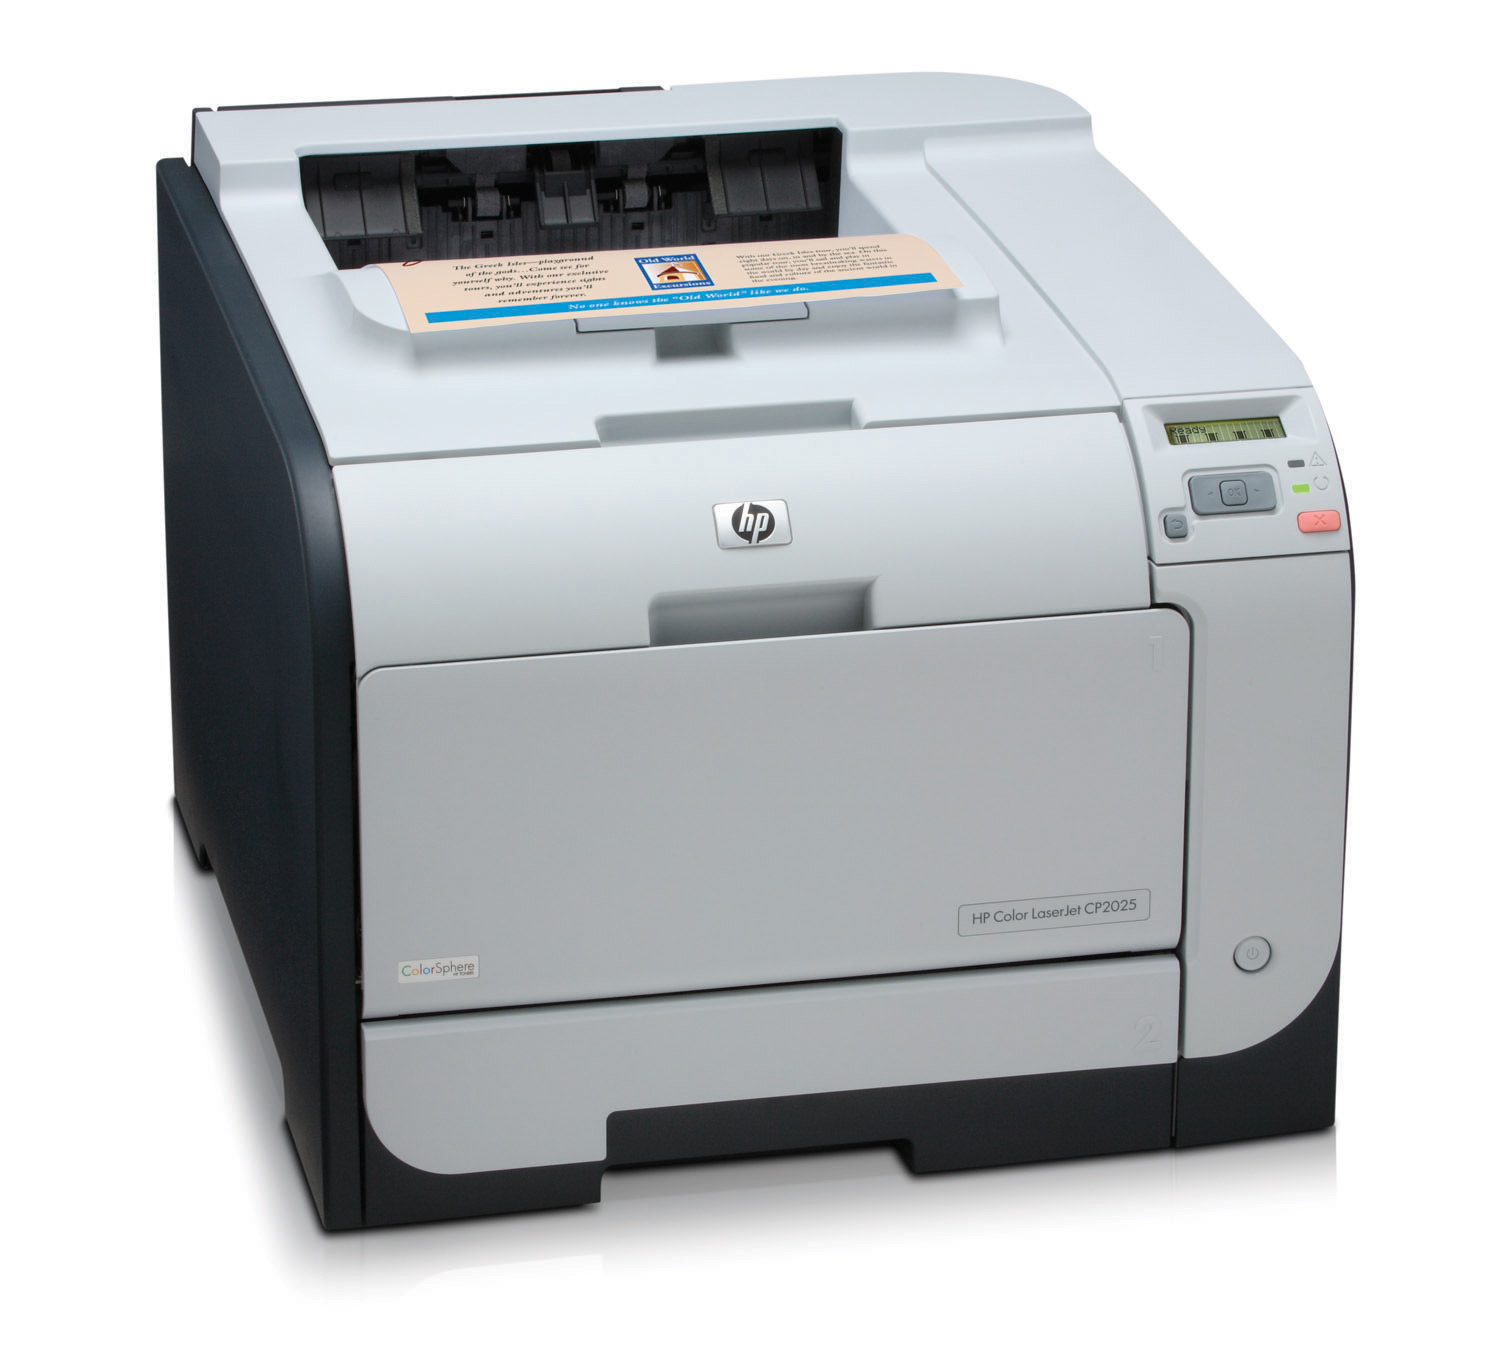 HP Color LaserJet CP 2025 X